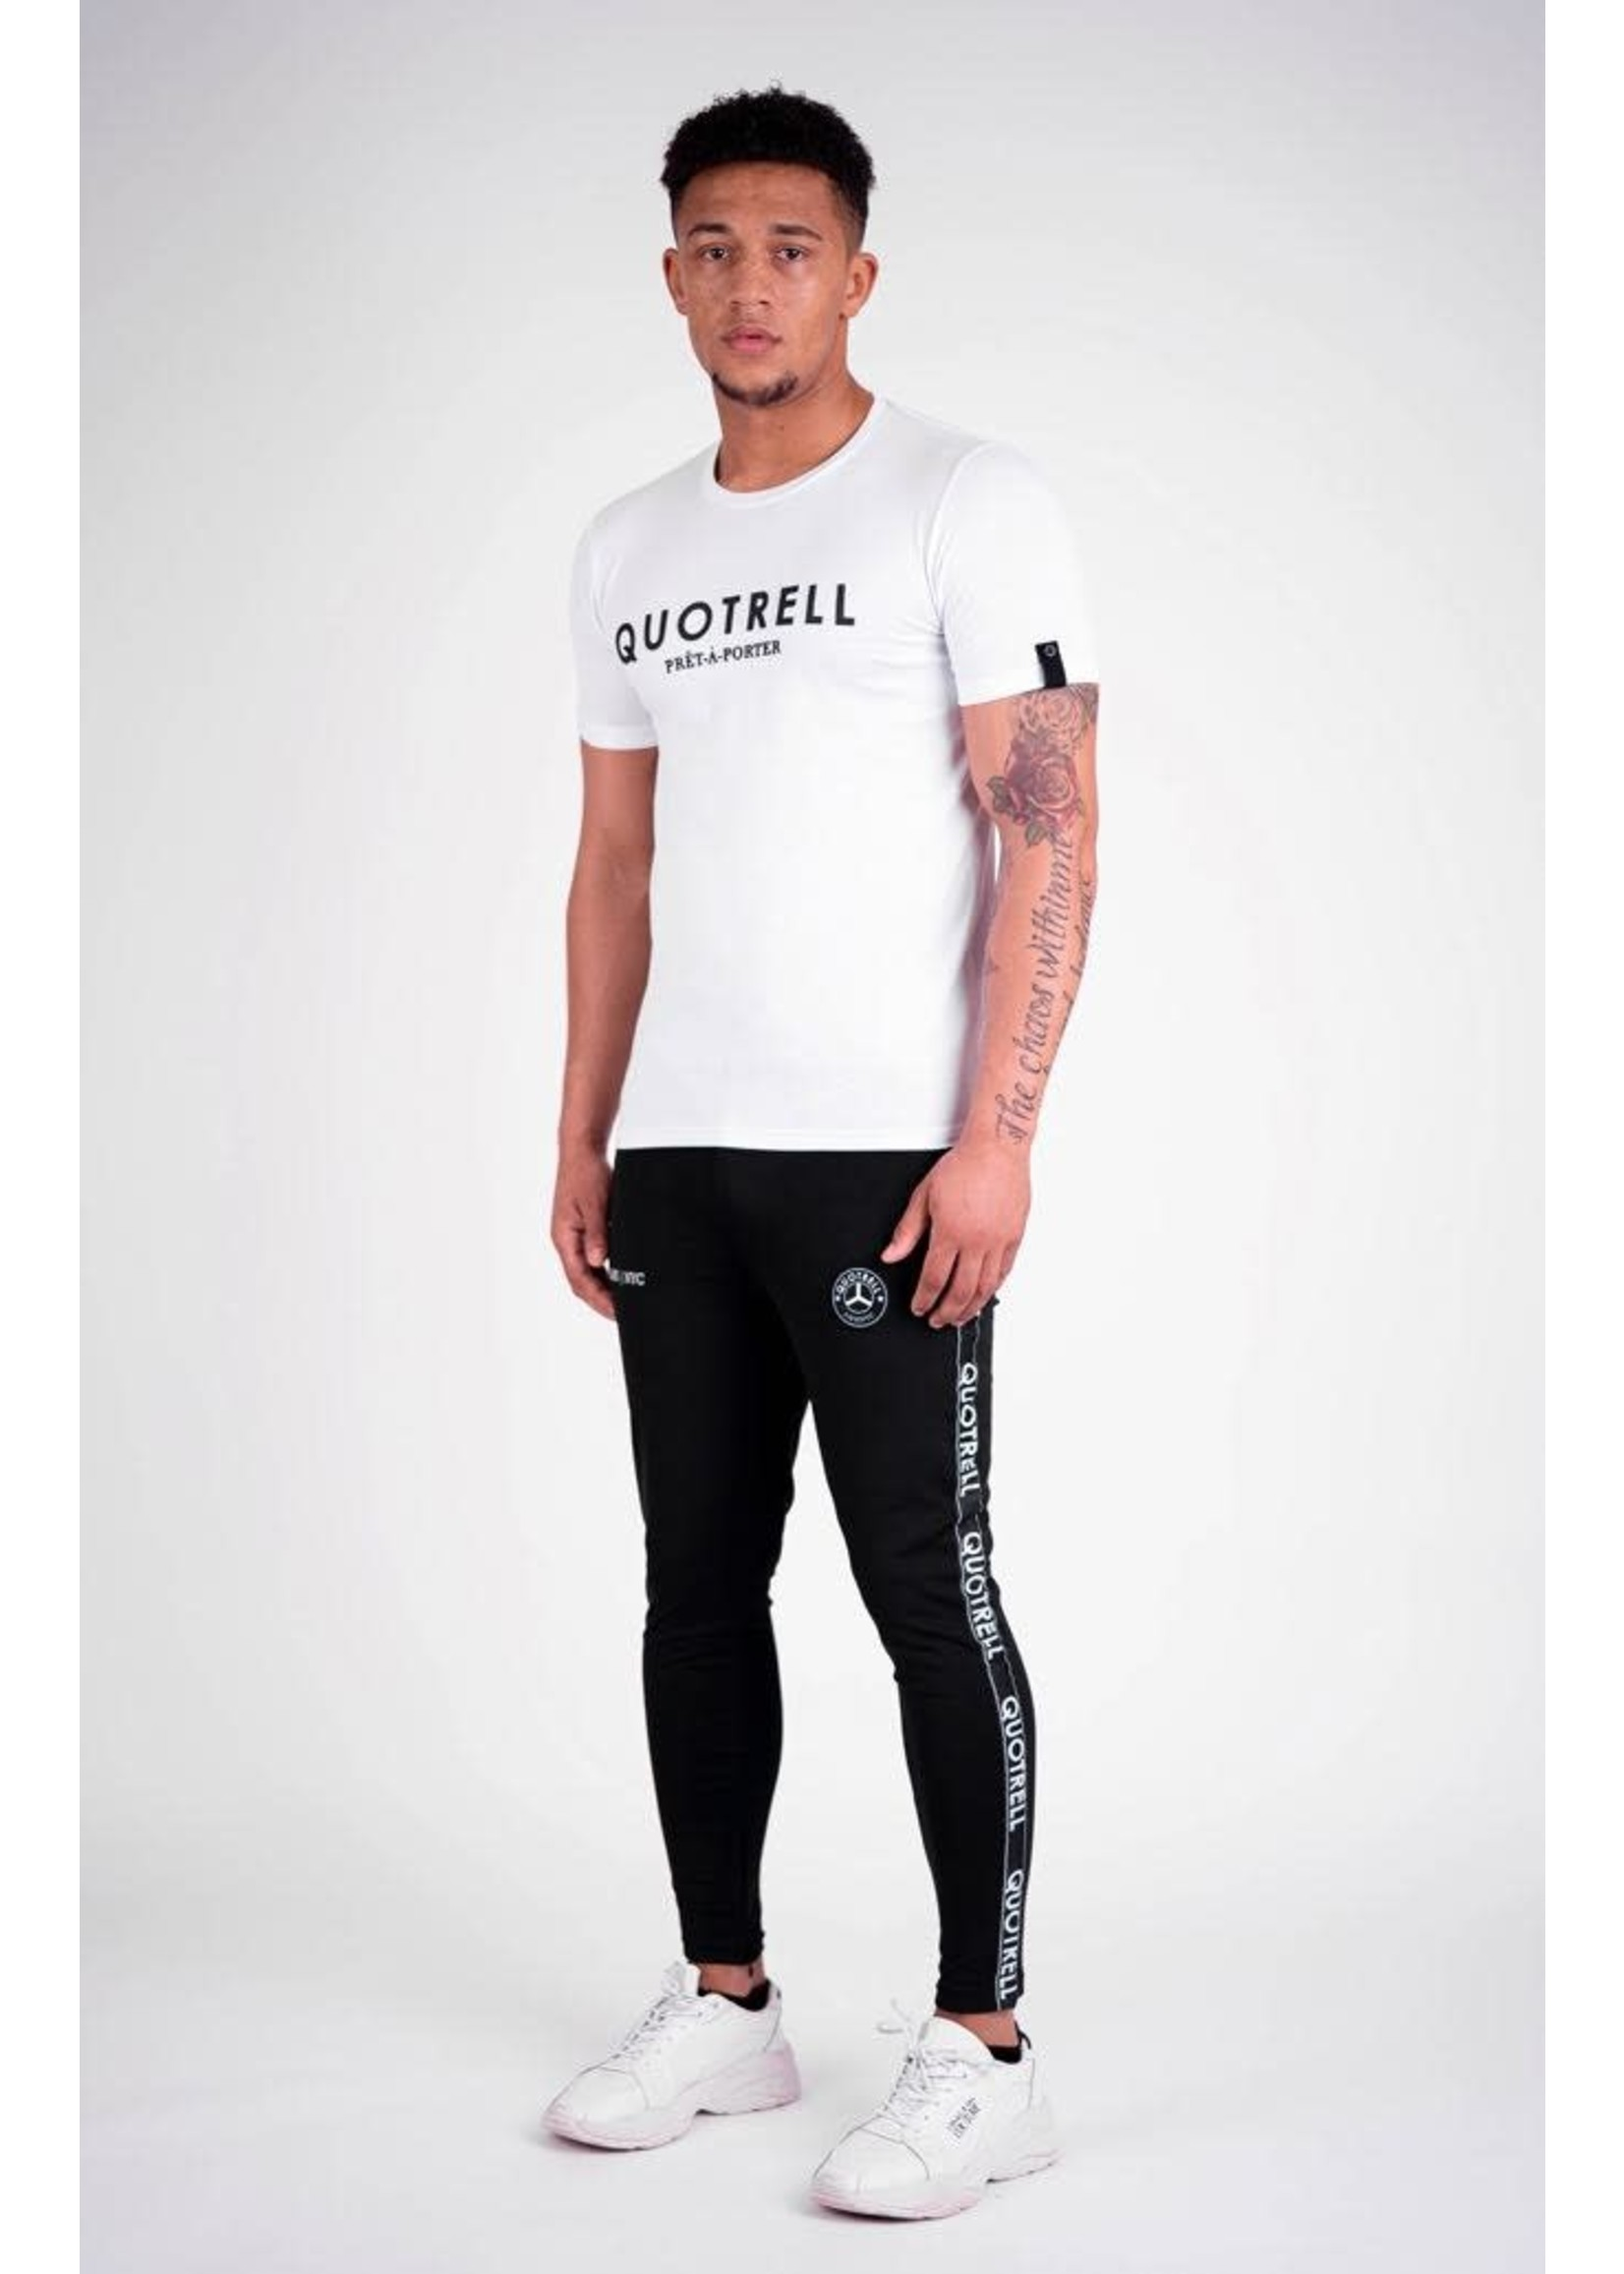 Quotrell QUOTRELL Basic Tee - White